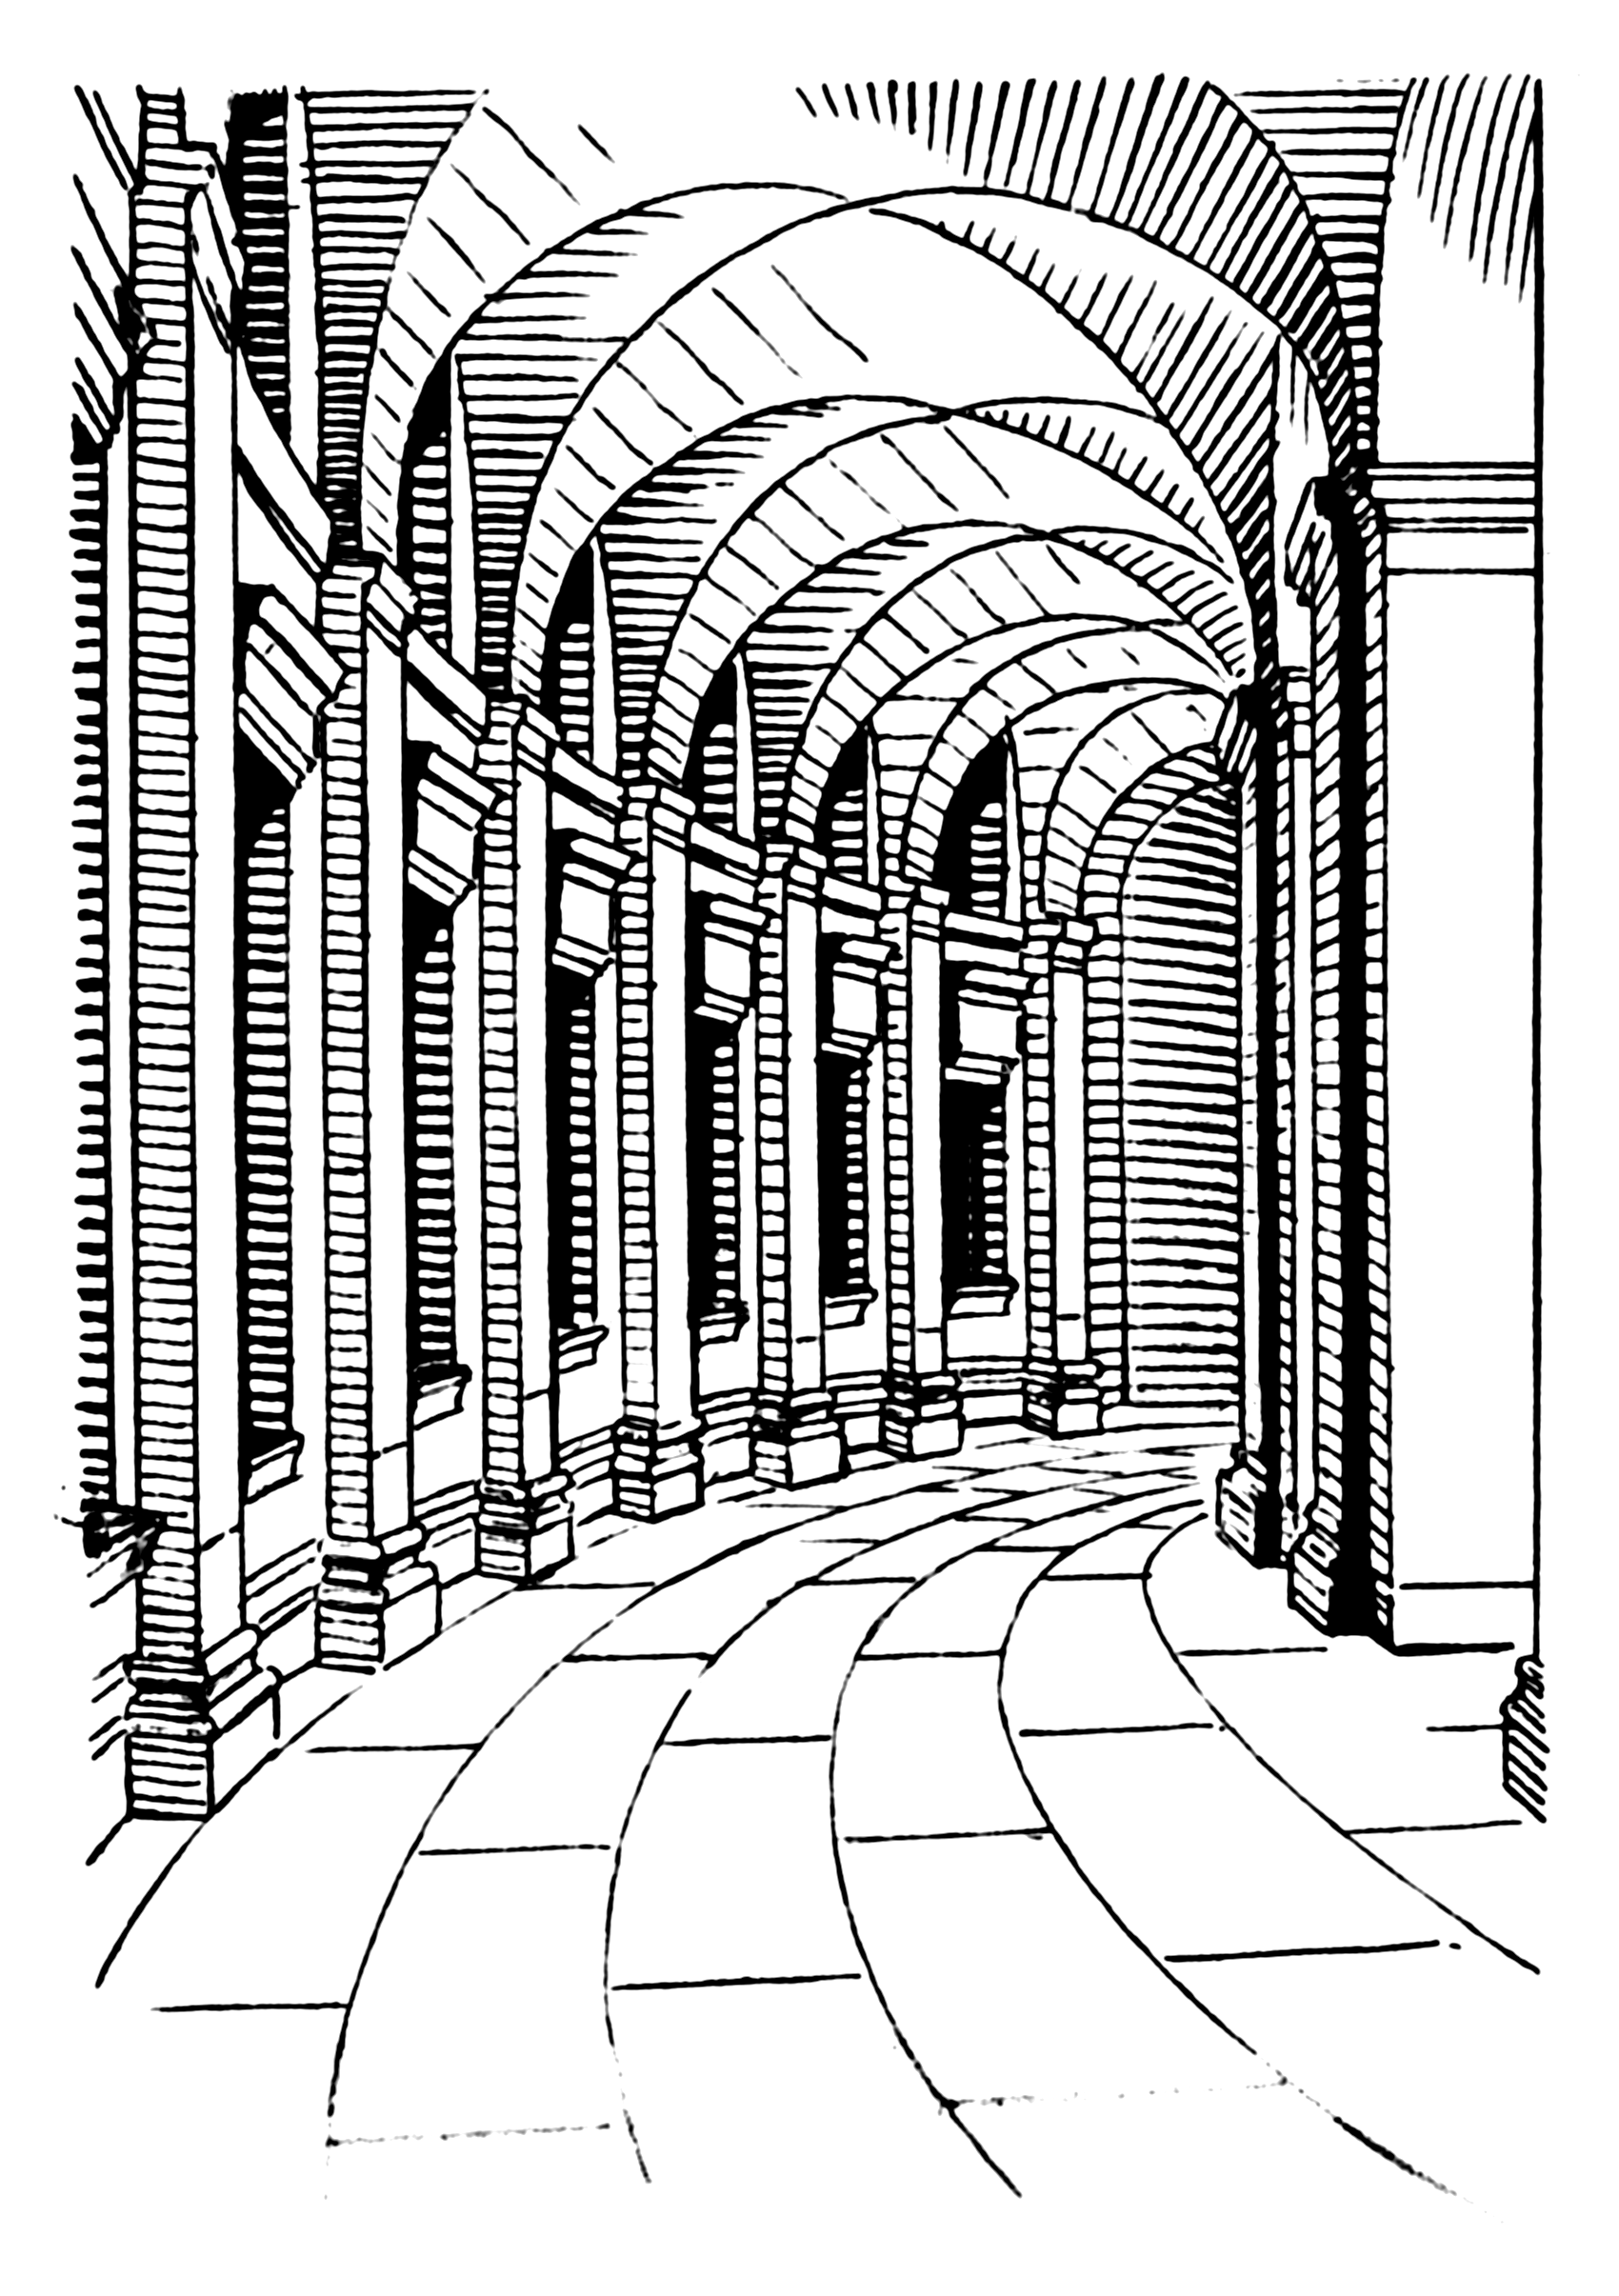 https://upload.wikimedia.org/wikipedia/commons/5/59/Arcade_%28PSF%29.png